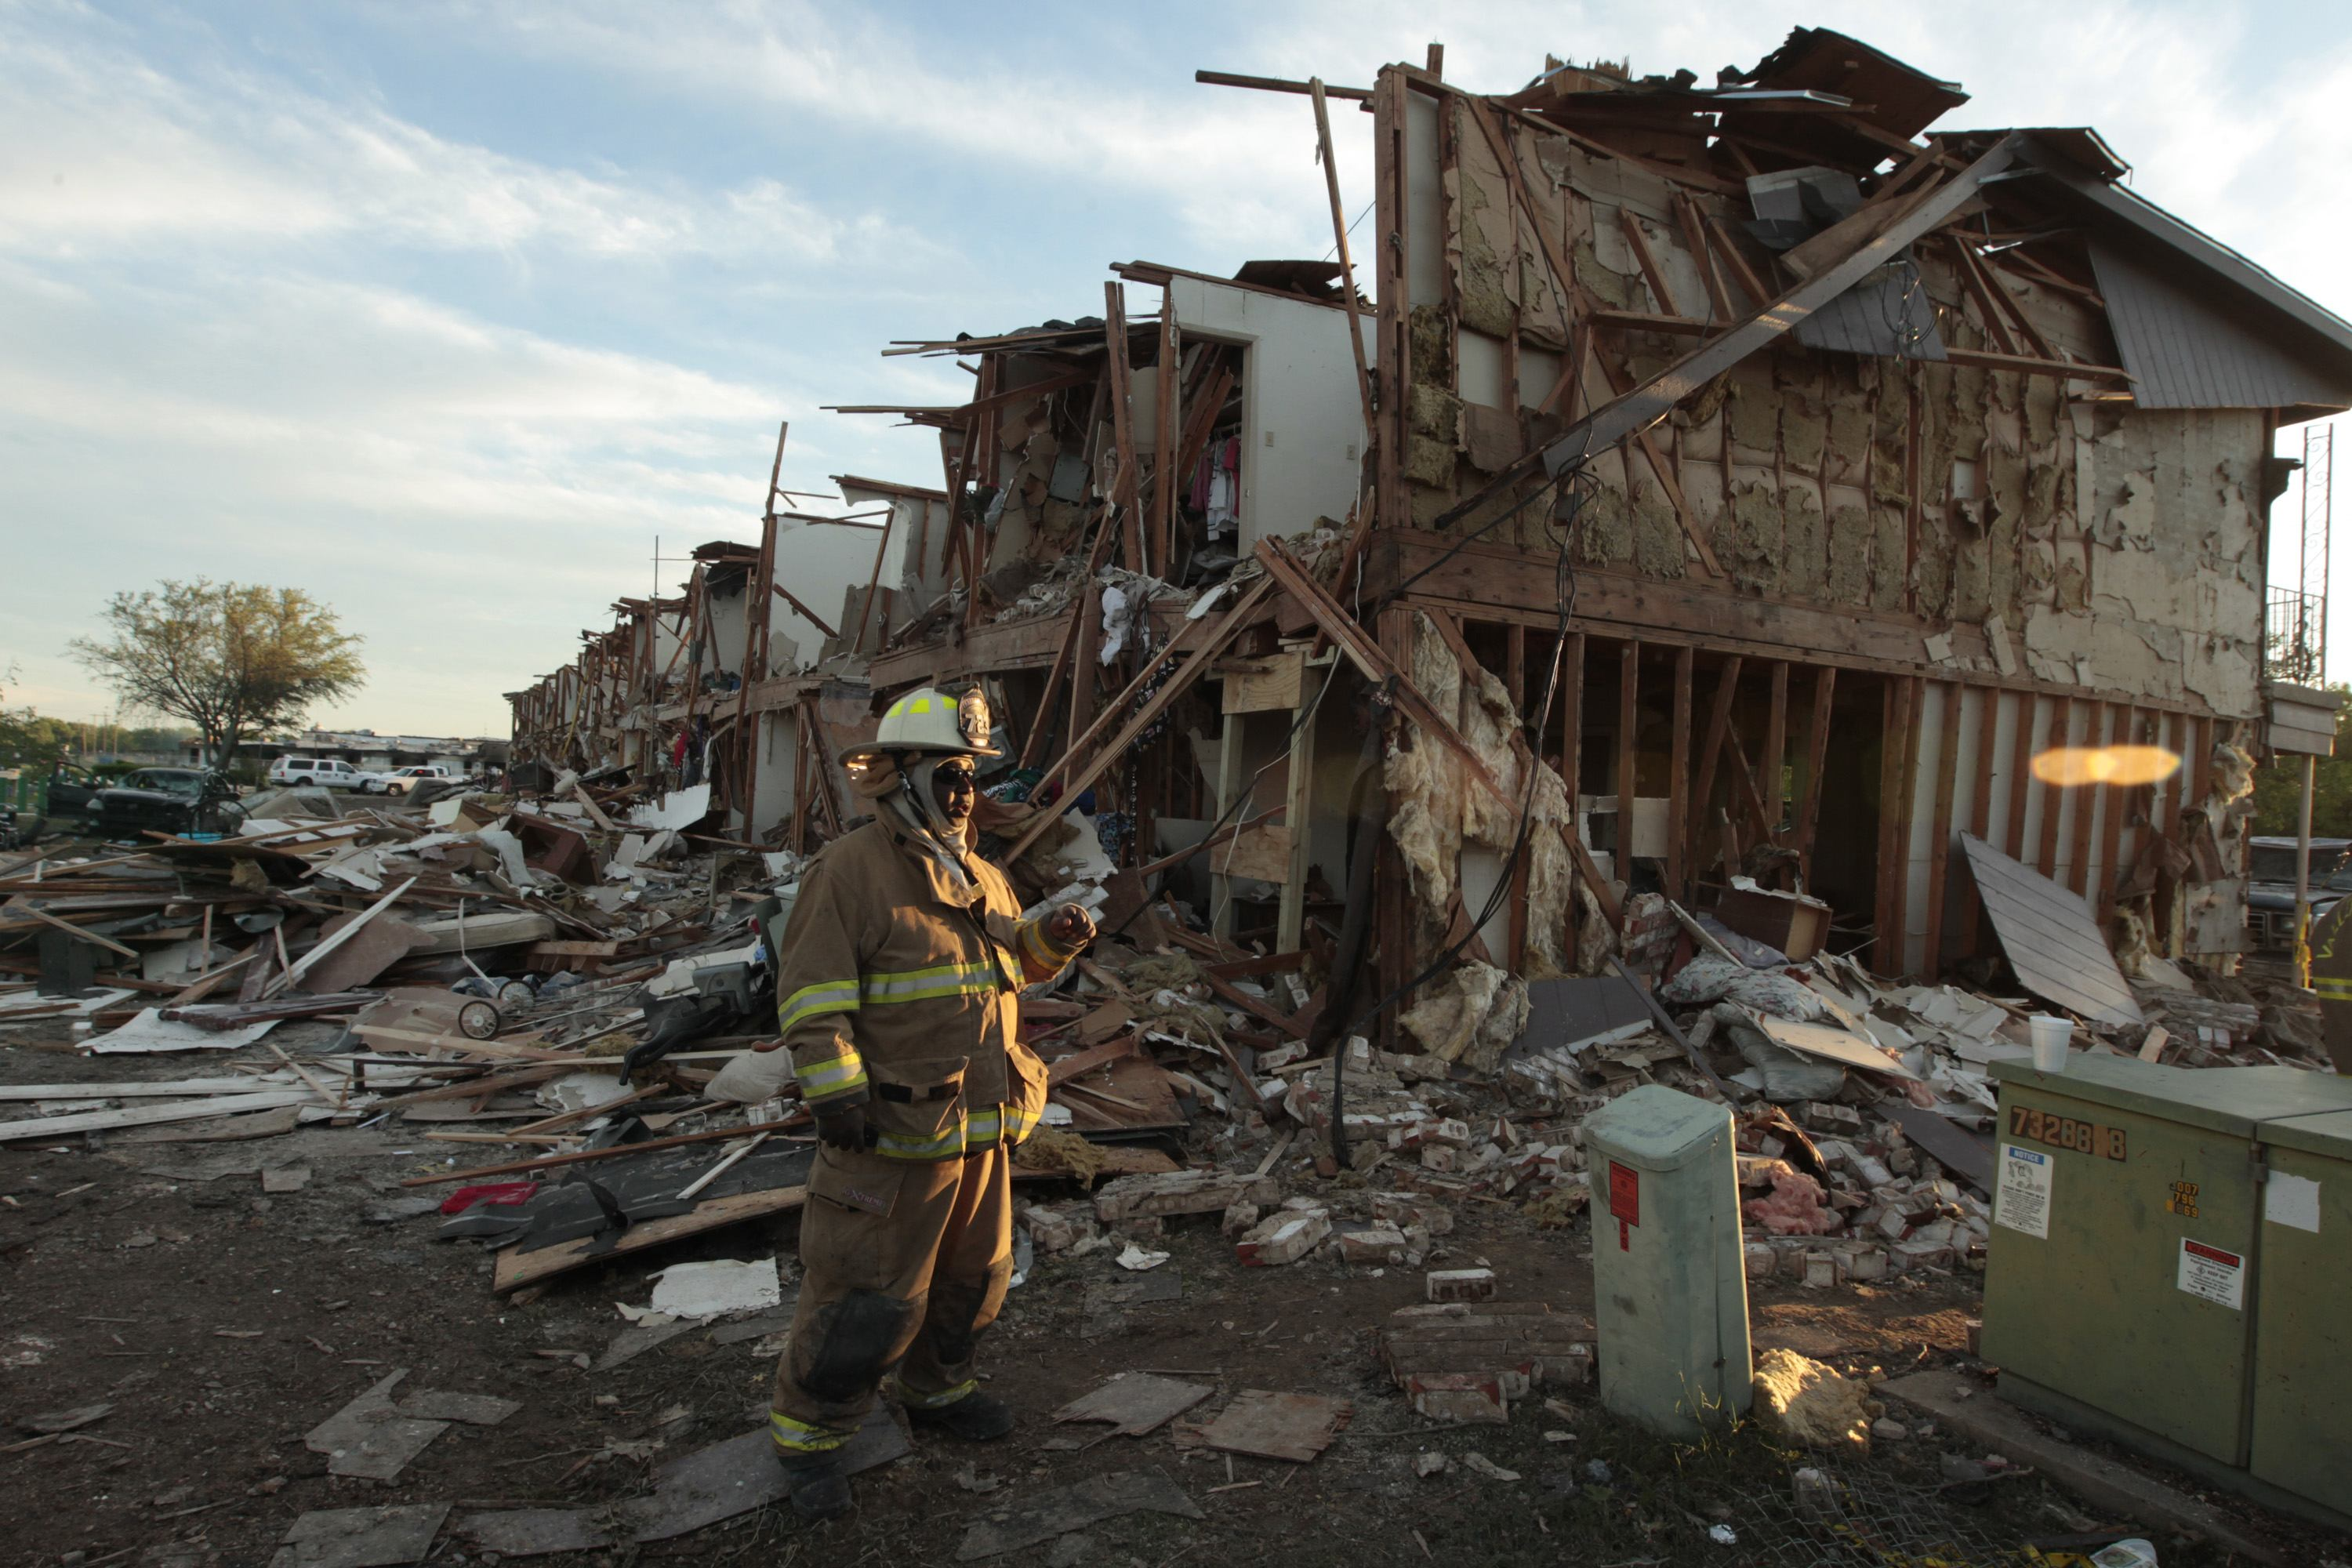 Stands among a destroyed building caused by an explosion